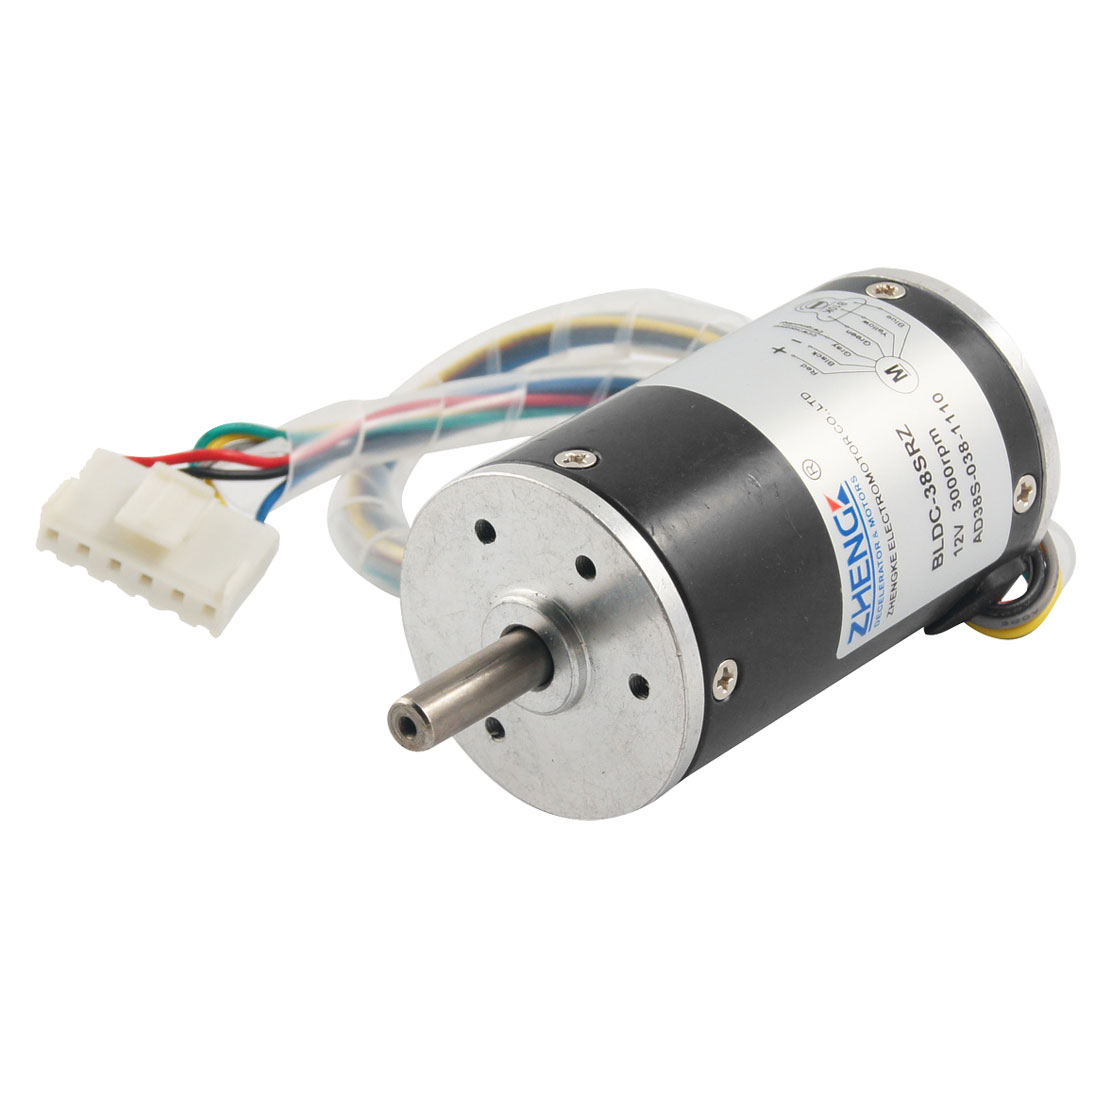 Electrical Machine 3000RPM 12V 0.5A DC Geared Motor